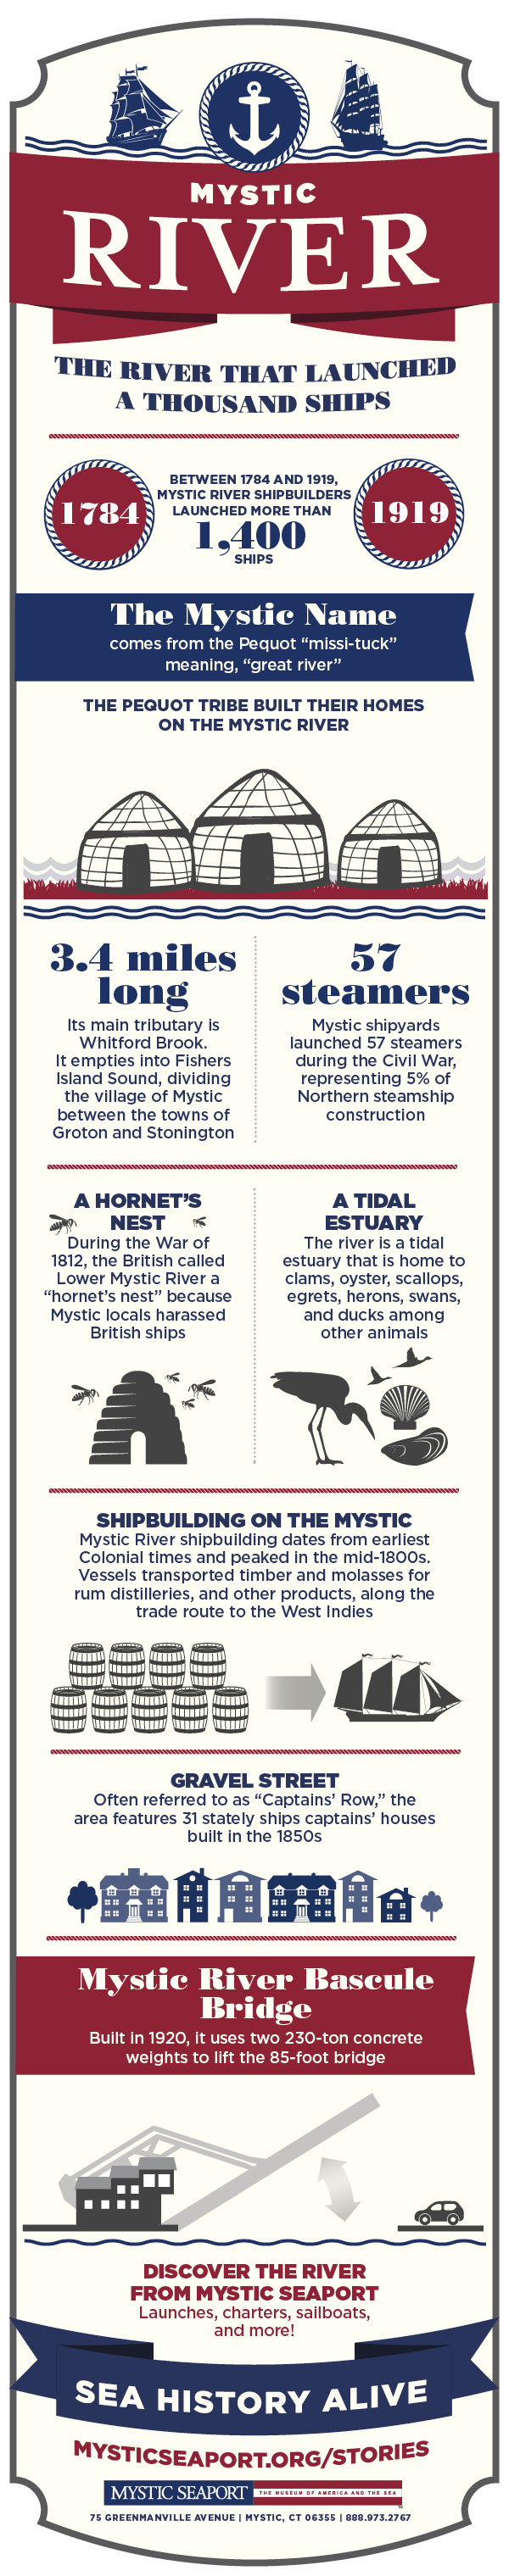 MSS-085B_history_of_mystic_river_infographic